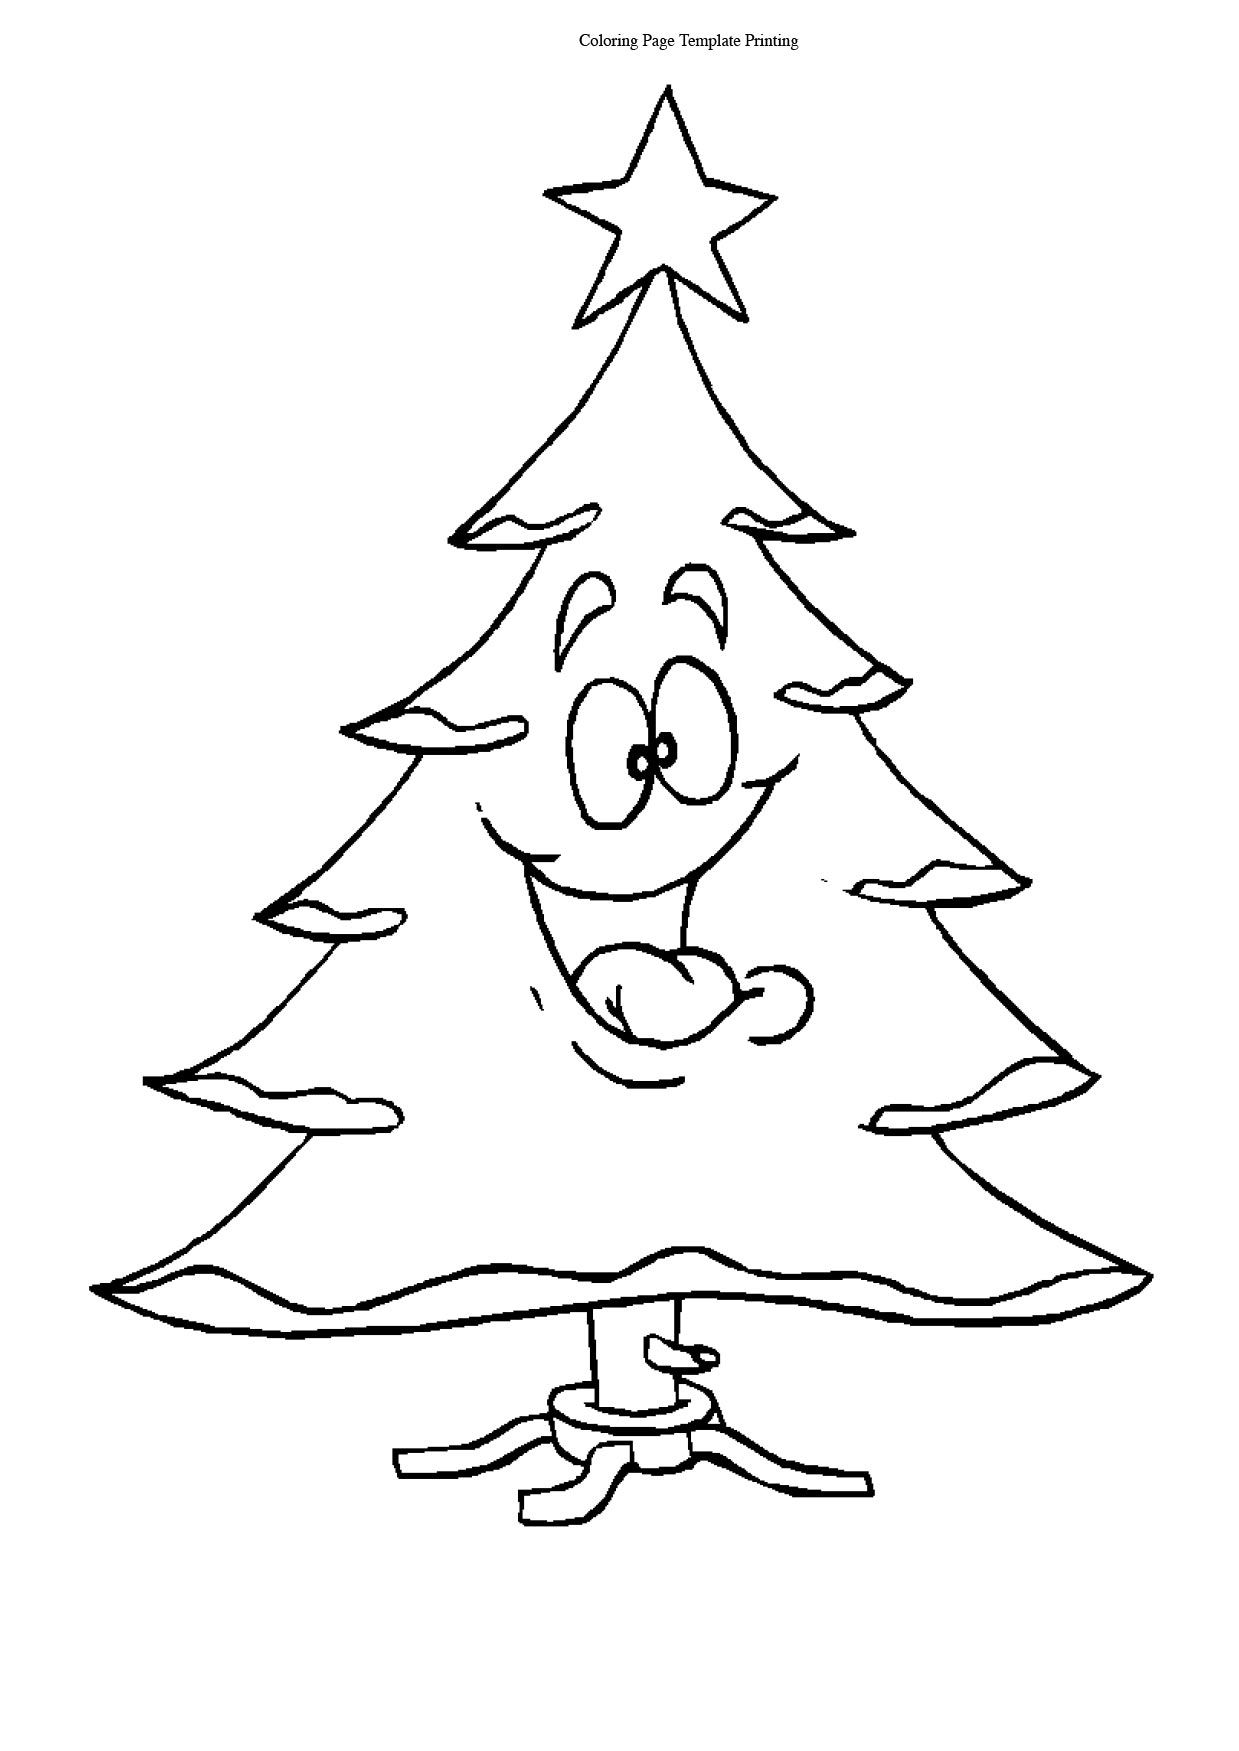 Christmas Tree Cartoon coloring pages